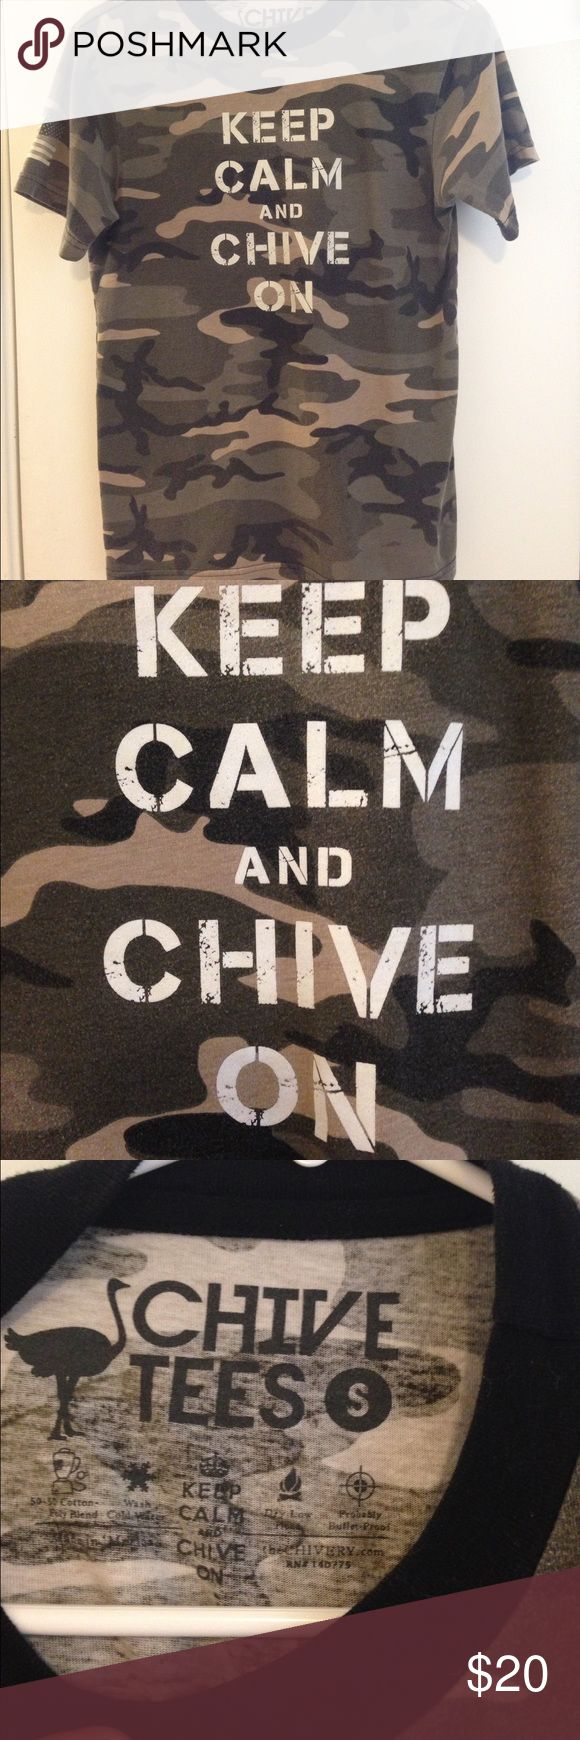 Chive Tee Shirt Camo Chive tee shirt Camo print size small, it is men's but seems more unisex to me....fits smaller. Army Military edition. Keep Calm and Chive on! Some normal fading. Chive Shirts Tees - Short Sleeve